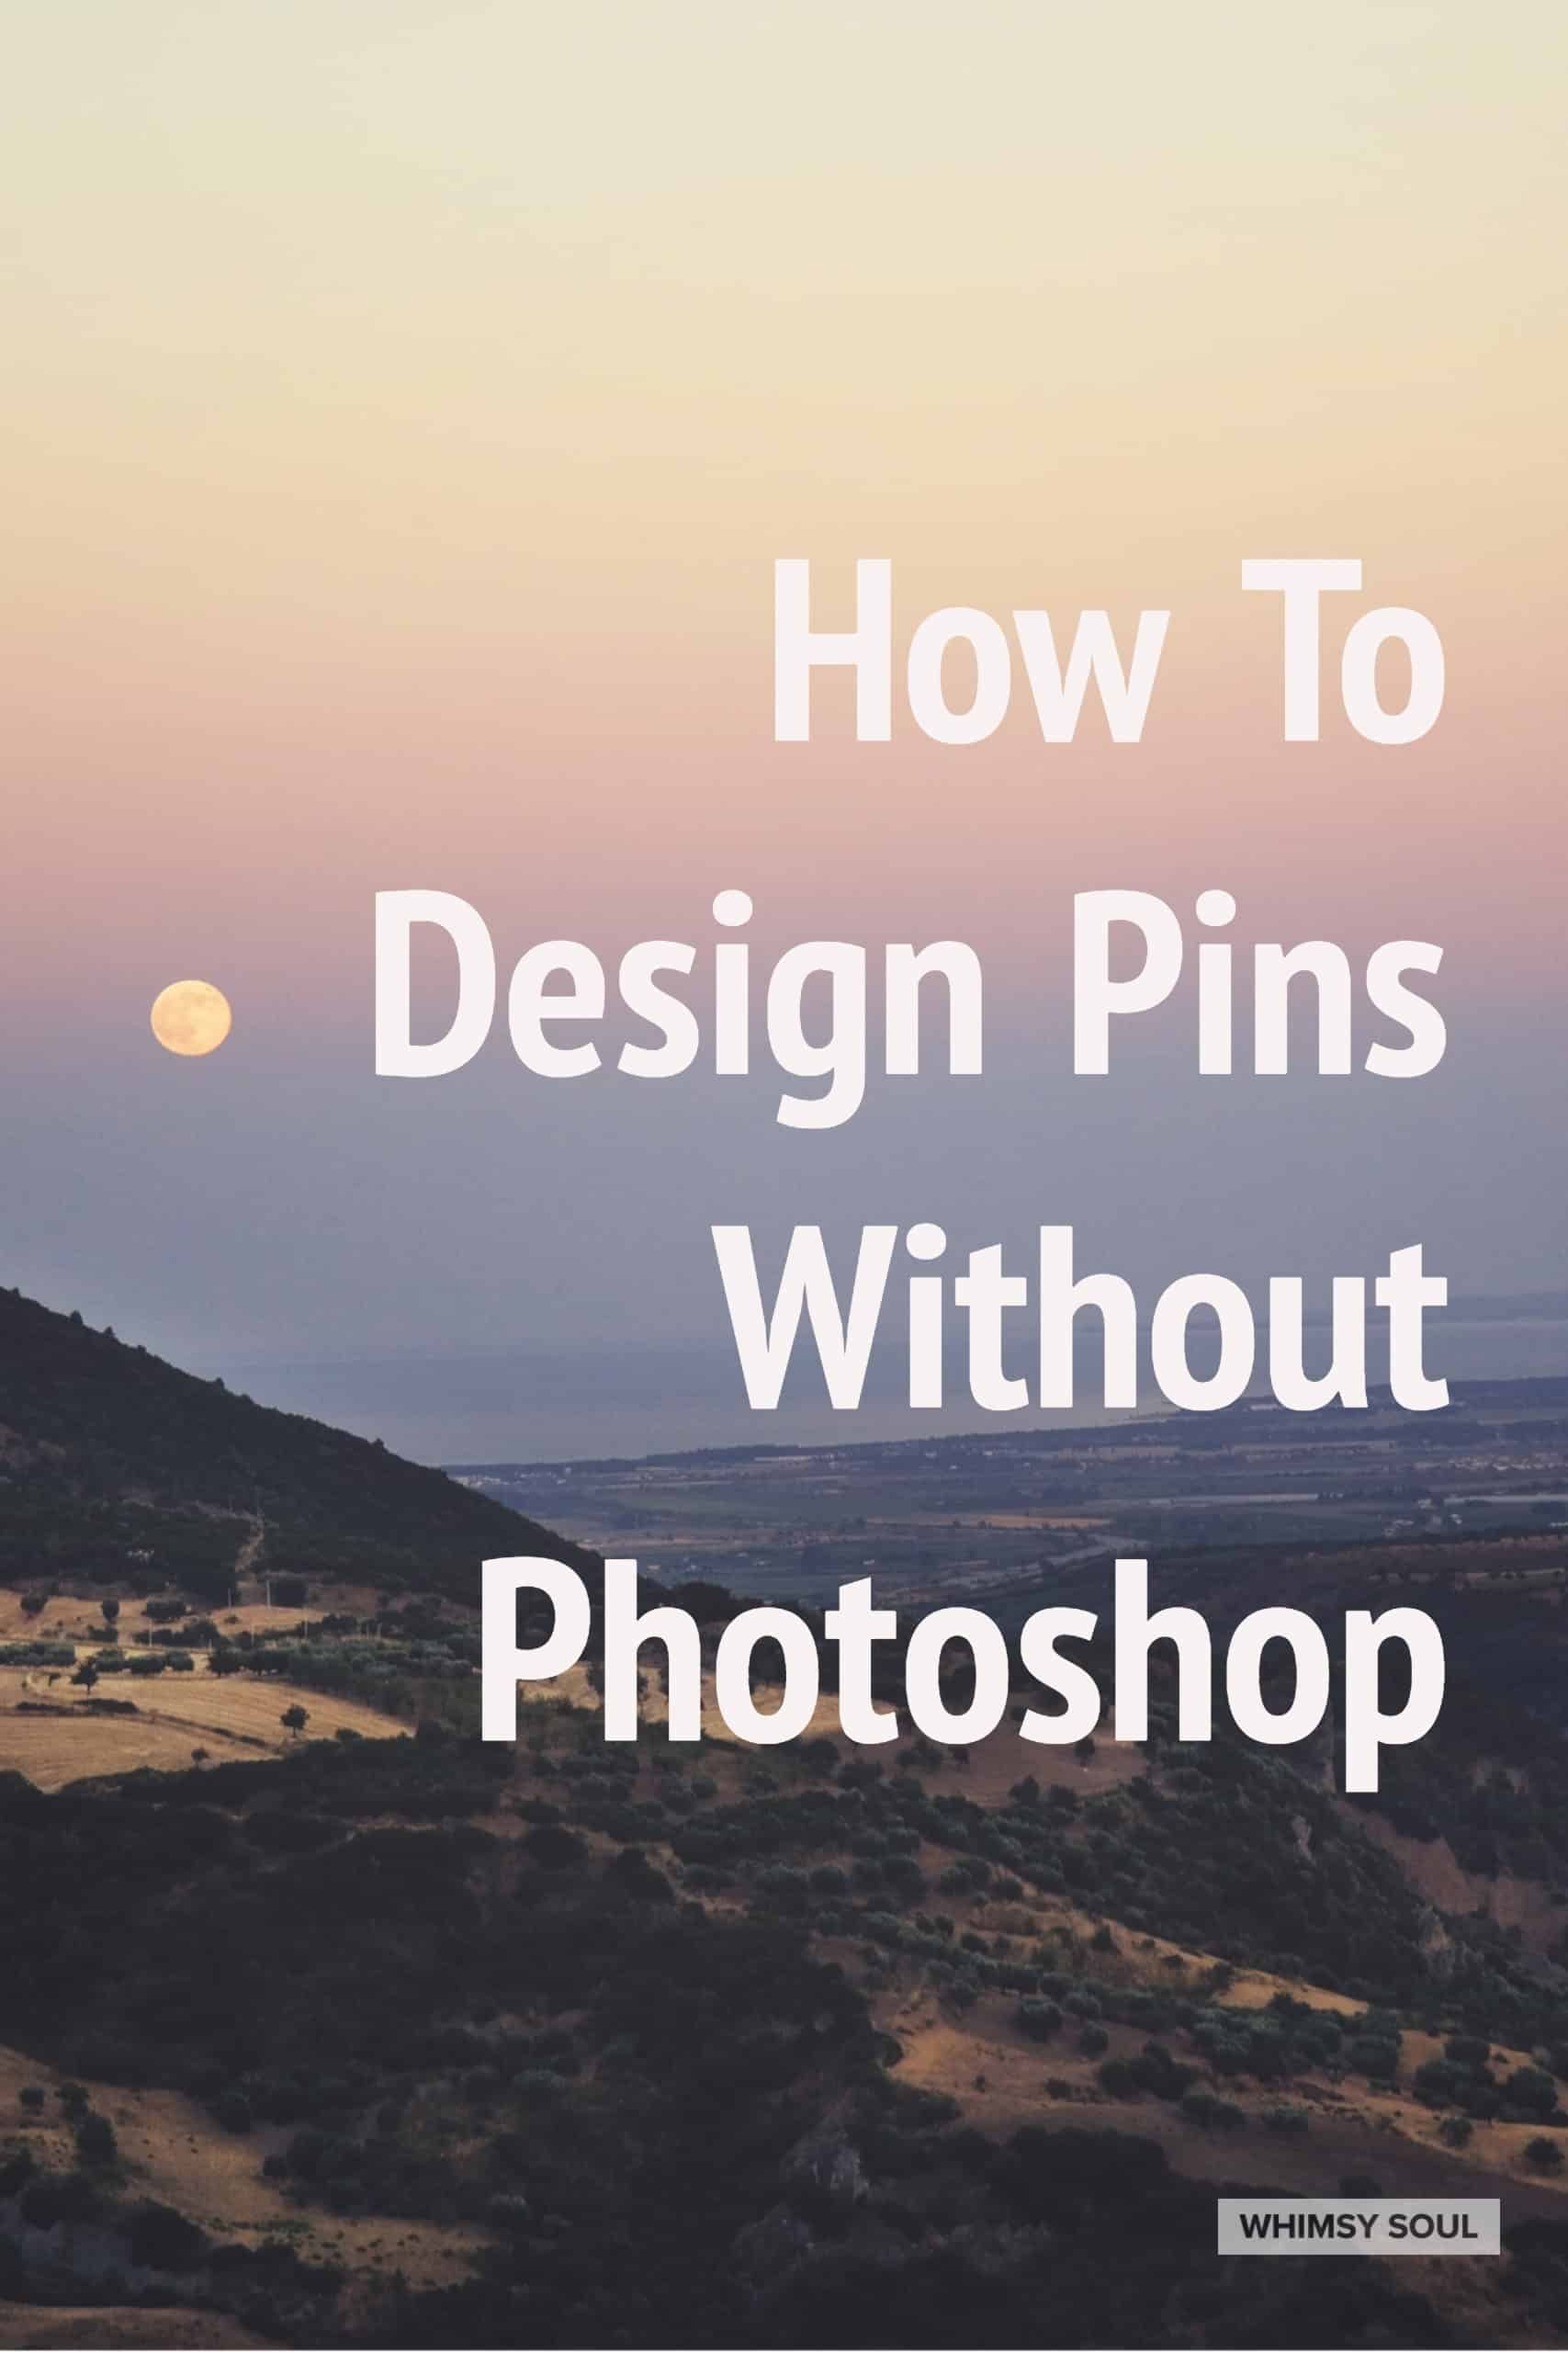 how to design pins without photoshop